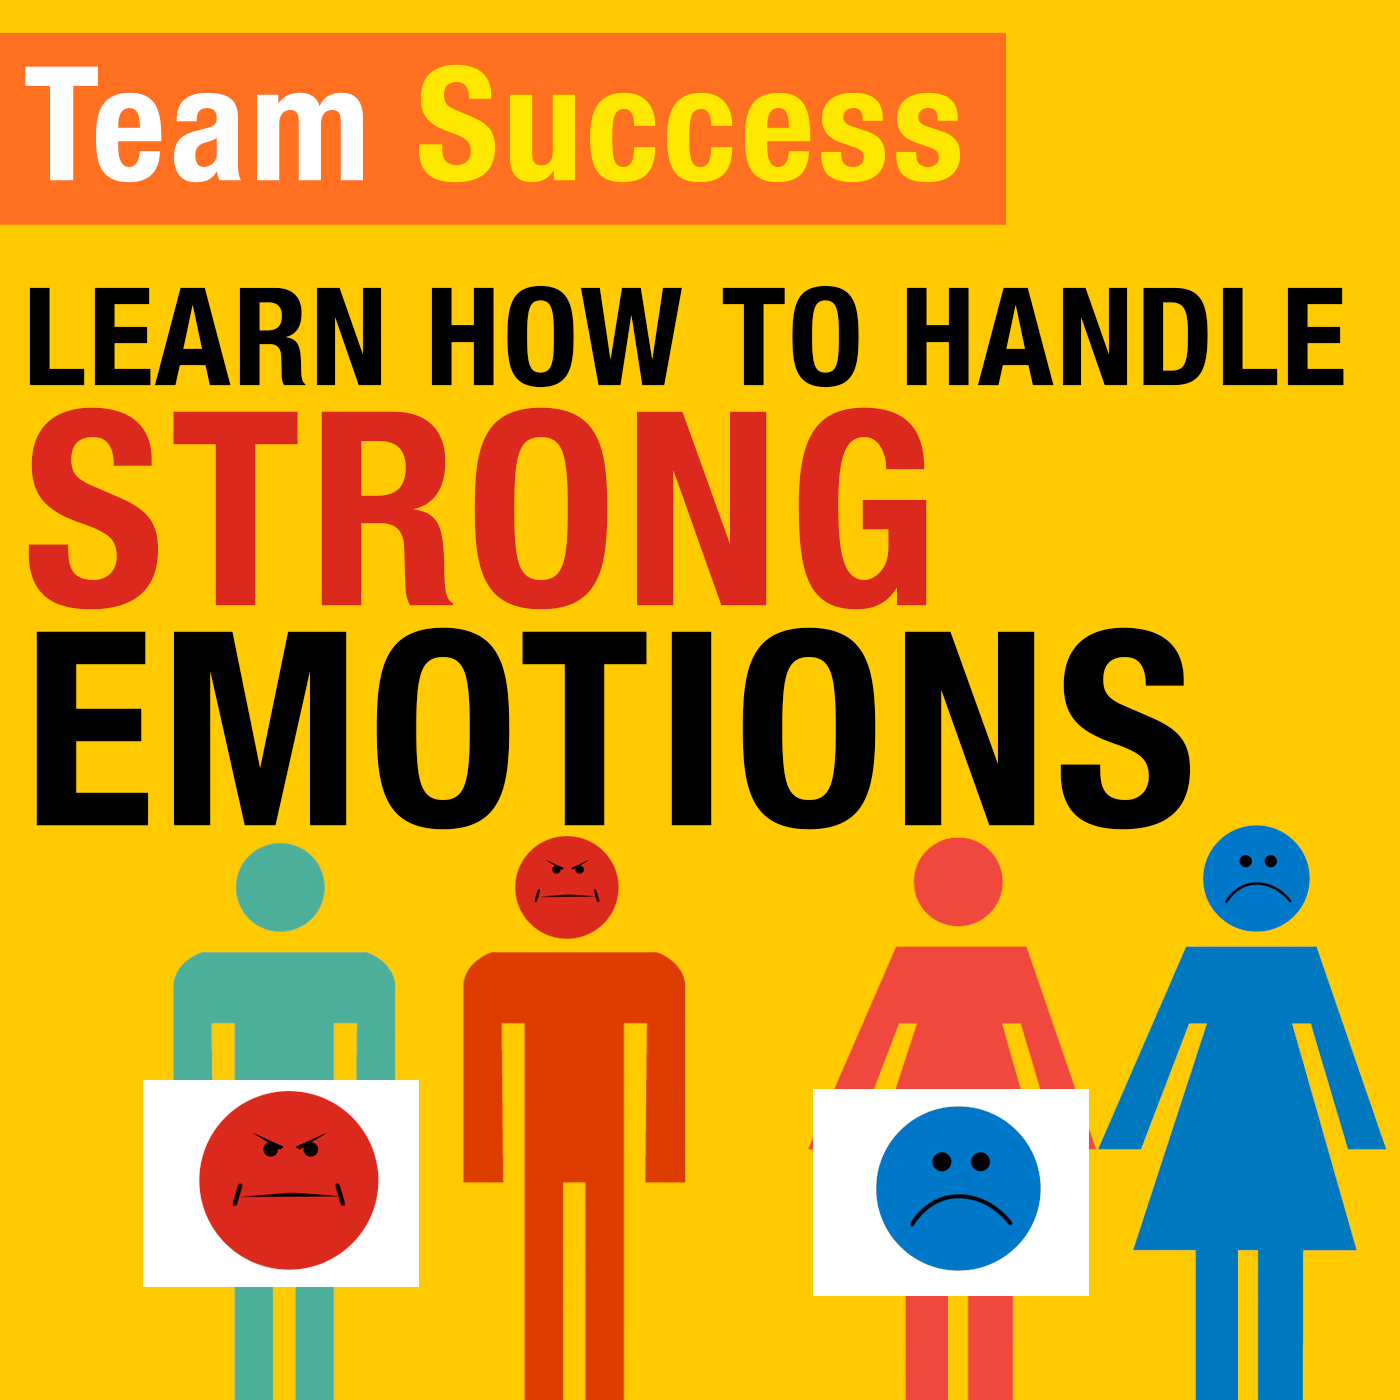 Learn How To Handle Strong Emotions